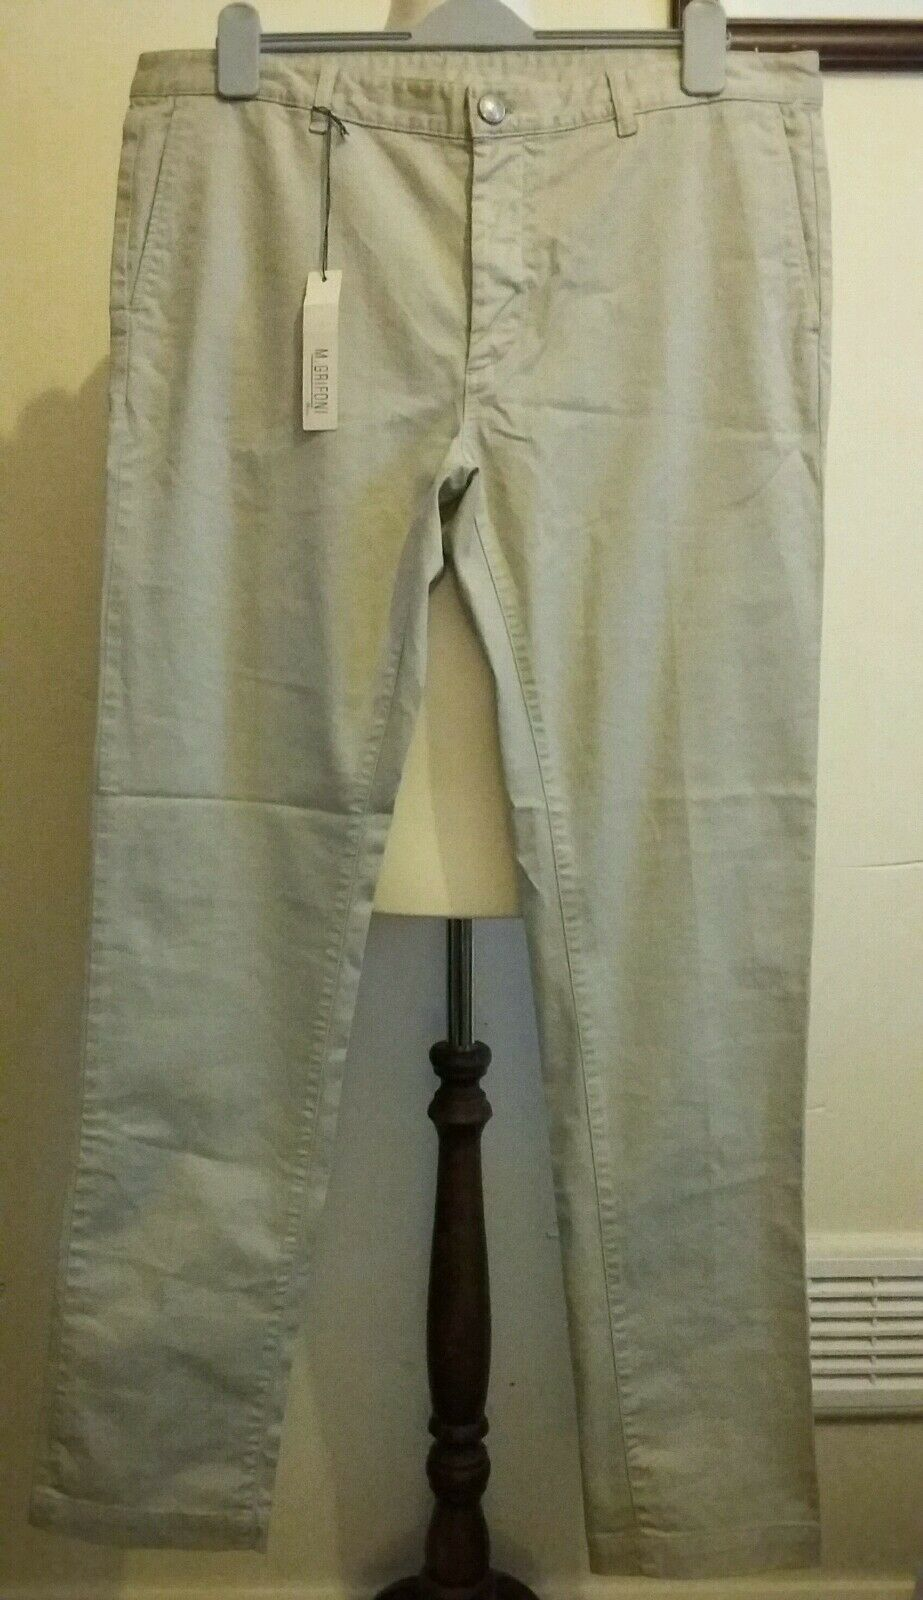 MAURO GRIFONI Chinos Pant Trouser Beige Made in italy 54 uk 36